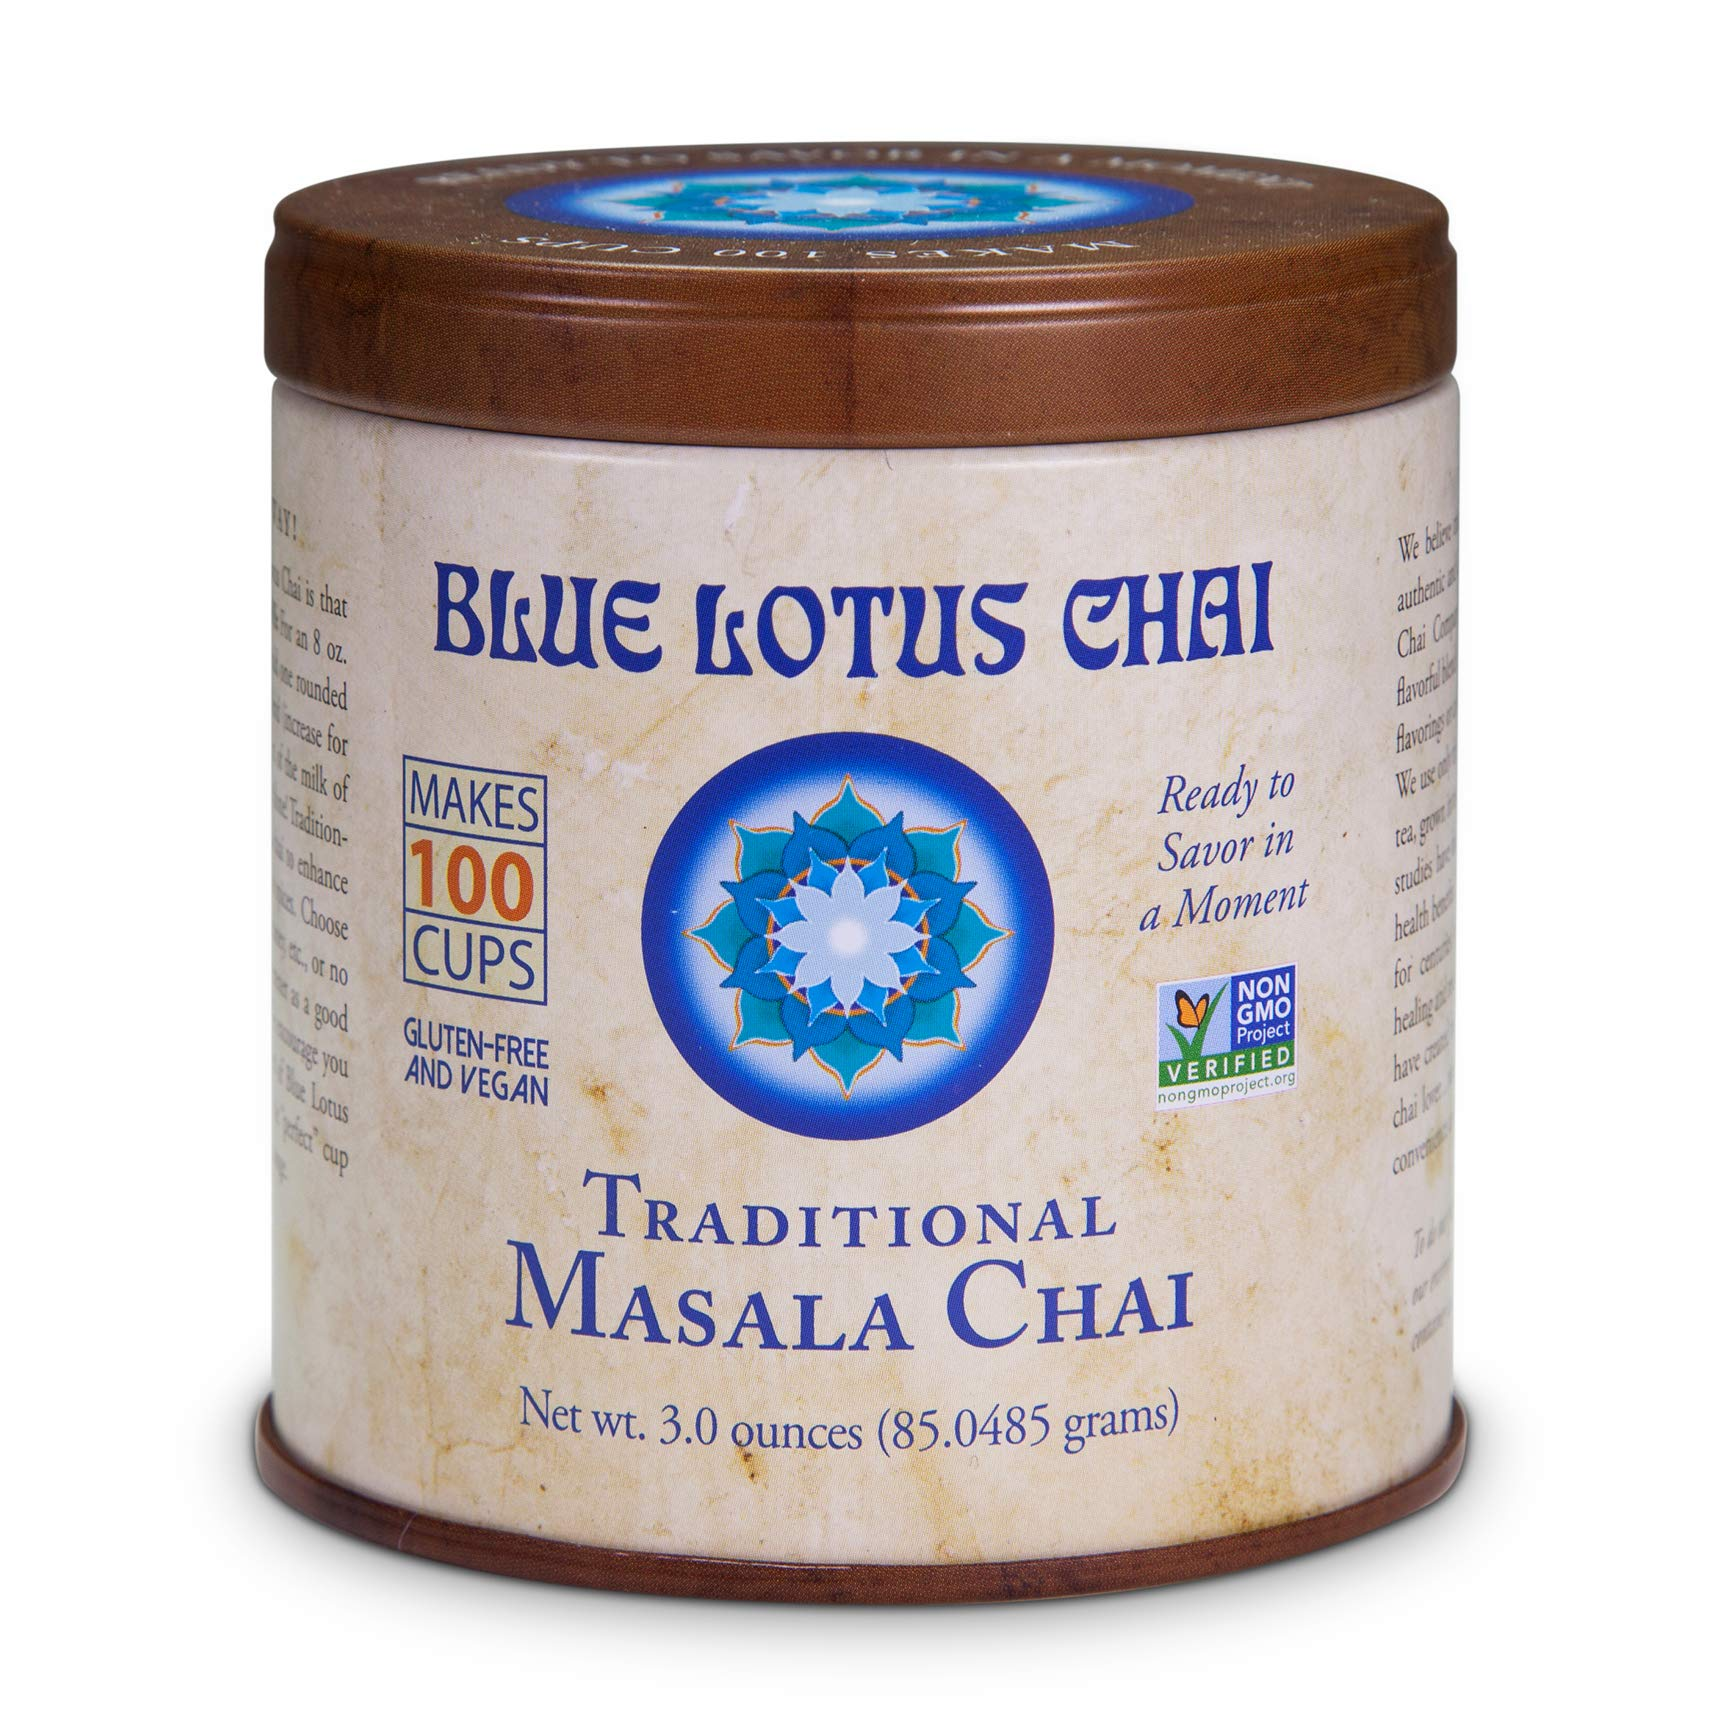 Blue Lotus Chai - Traditional Masala Chai - Makes 100 Cups - 3 Ounce Masala Spiced Chai Powder with Organic Spices - Instant Indian Tea No Steeping - No Gluten by Blue Lotus Chai